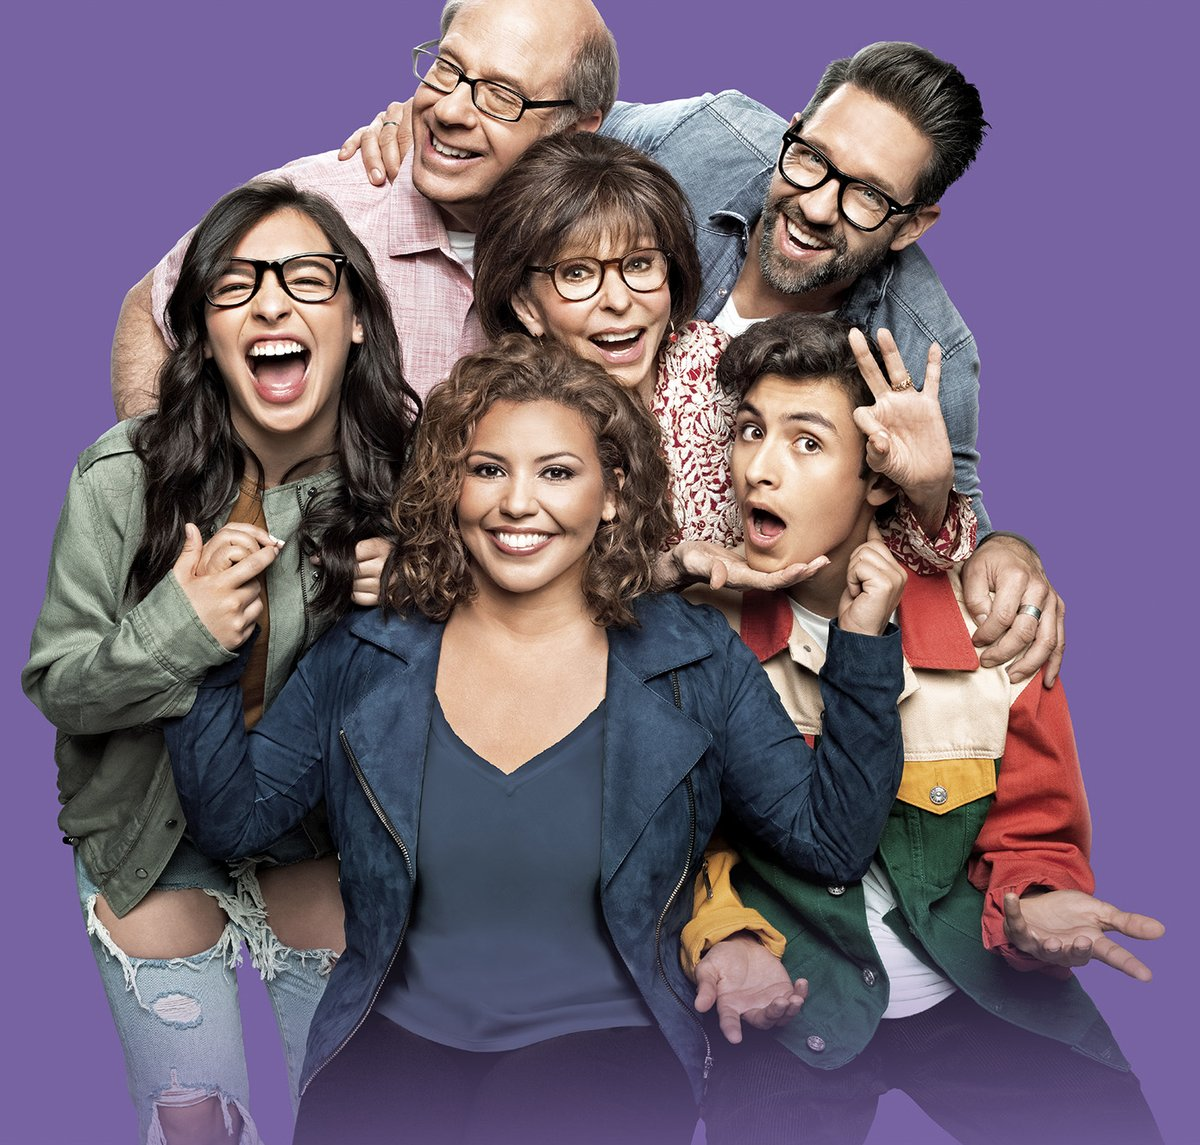 """45 years after its original premiere, the reimagined One Day At a Time returns to #CBS, Oct. 5 at 9:00 PM. Legendary producer Norman Lear says The times have changed, obviously the cast has changed, but the values remain the same – love and family make everything worthwhile."""""""